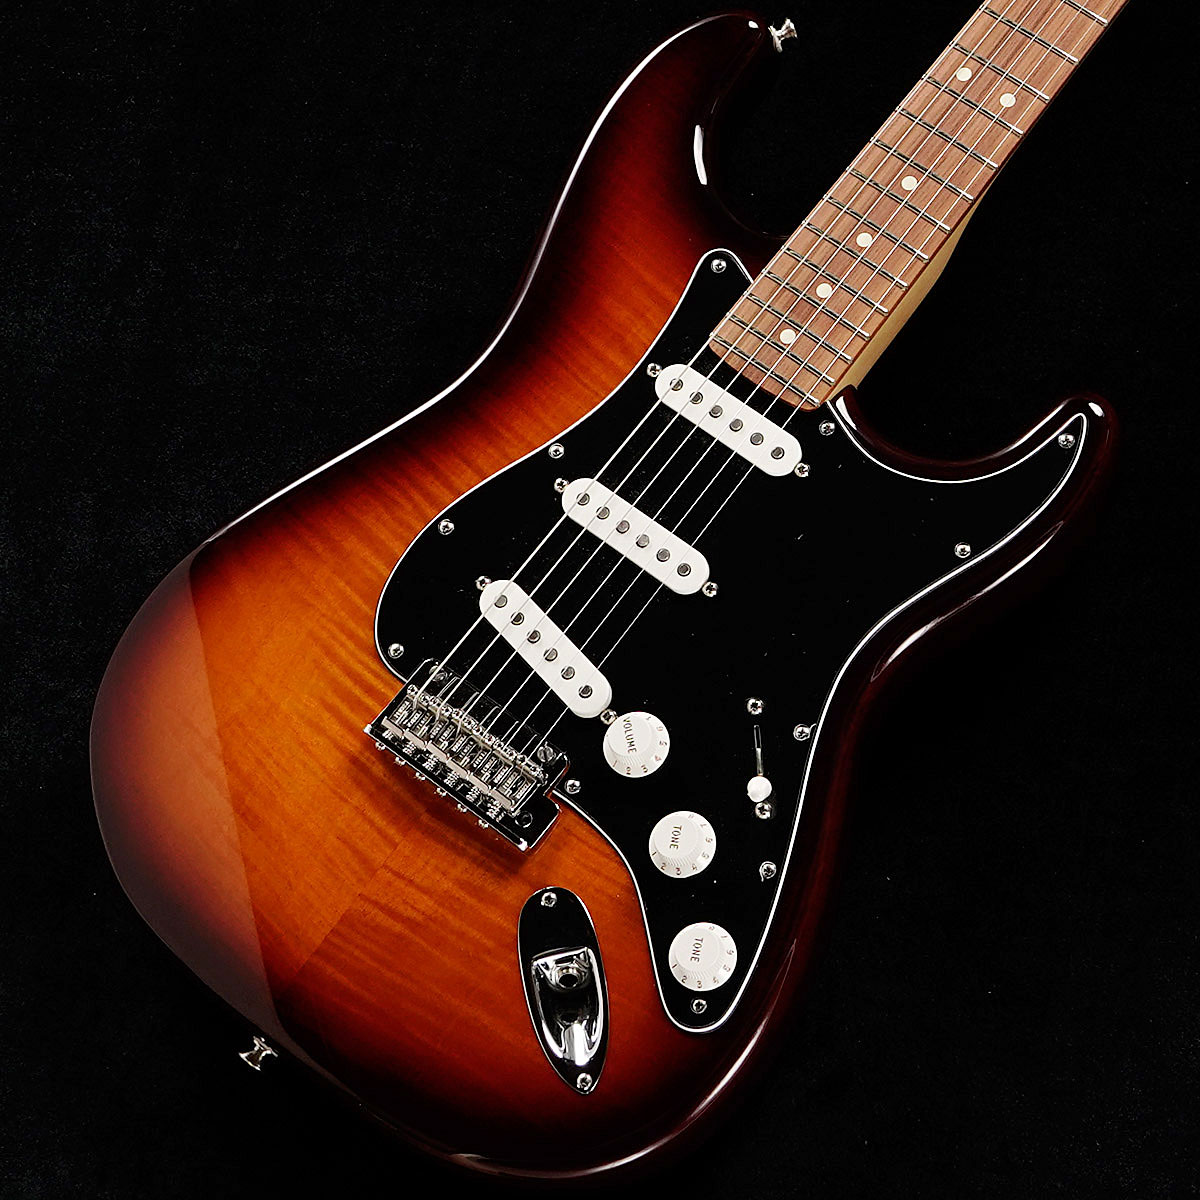 【楽天ランキング1位】 Fender/ HSS Player Series Stratocaster HSS Pau Plus Top Tobacco Fender Burst Pau Ferro フェンダー【御茶ノ水本店】, まいどドラッグ:9499bdb3 --- claudiocuoco.com.br